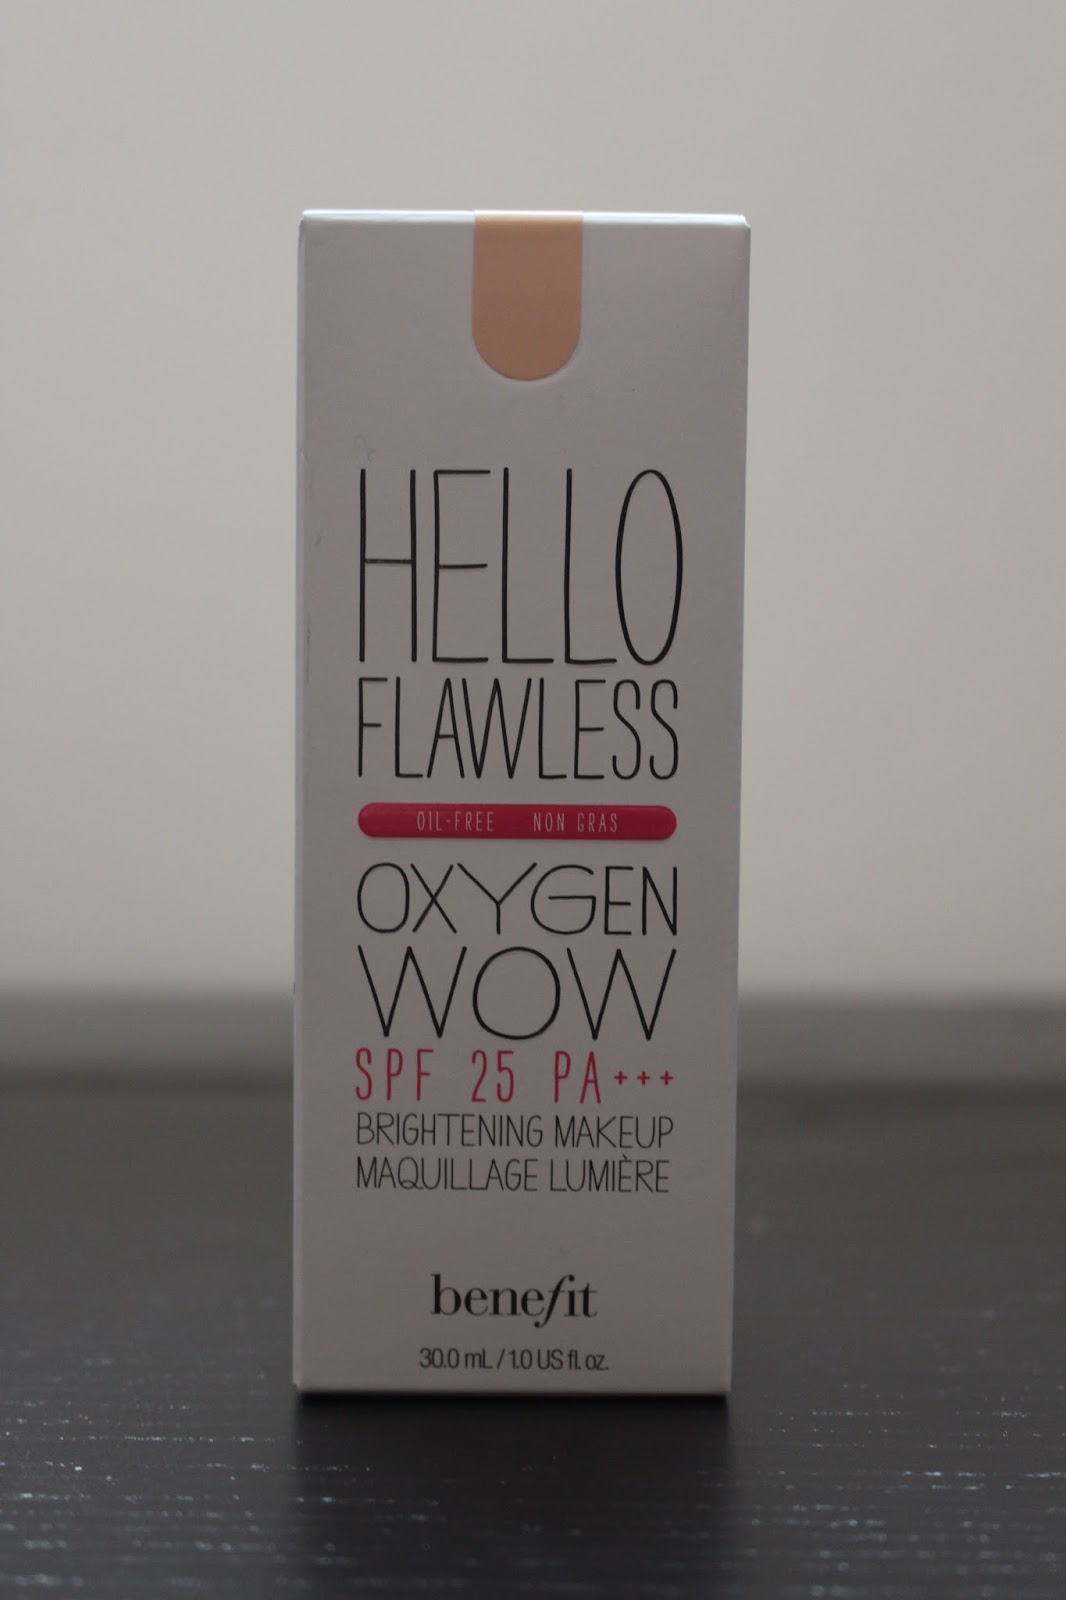 Benefit Hellow Flawless Oxygen Wow Foundation